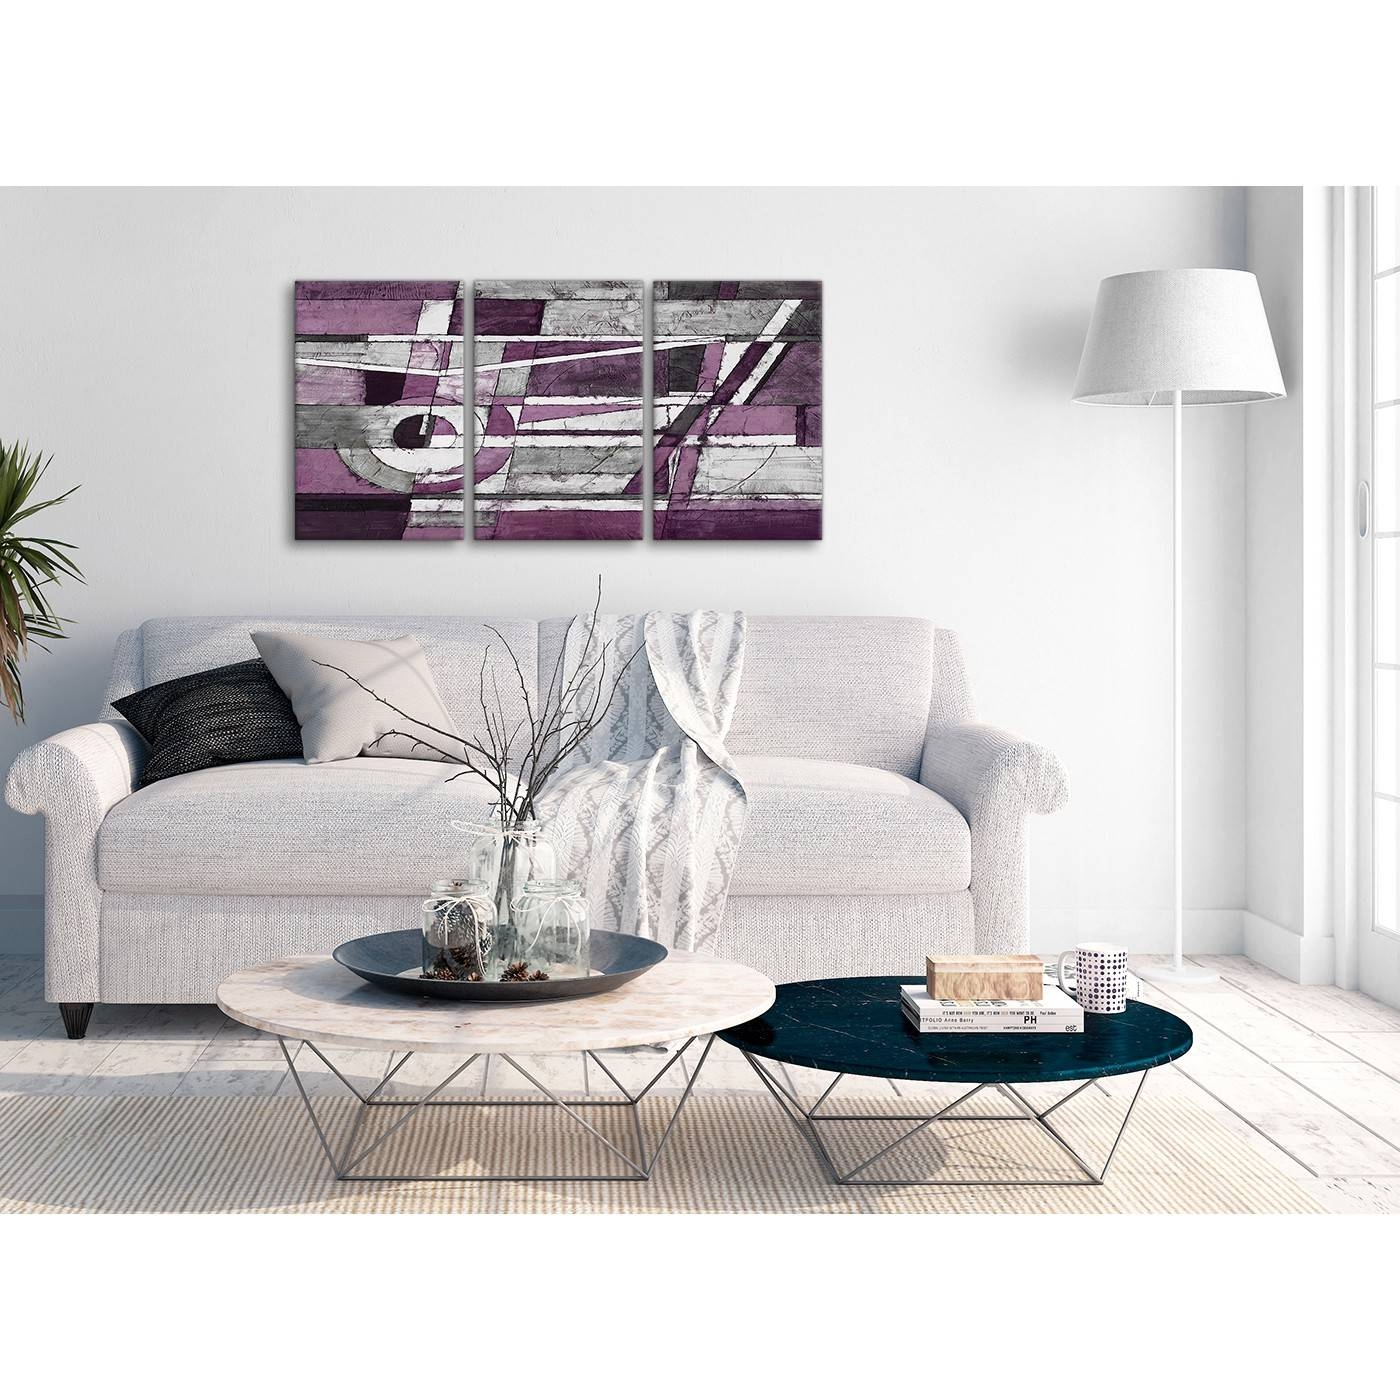 3 Panel Aubergine Grey White Painting Dining Room Canvas Wall Art In Most Recent Aubergine Wall Art (View 11 of 20)